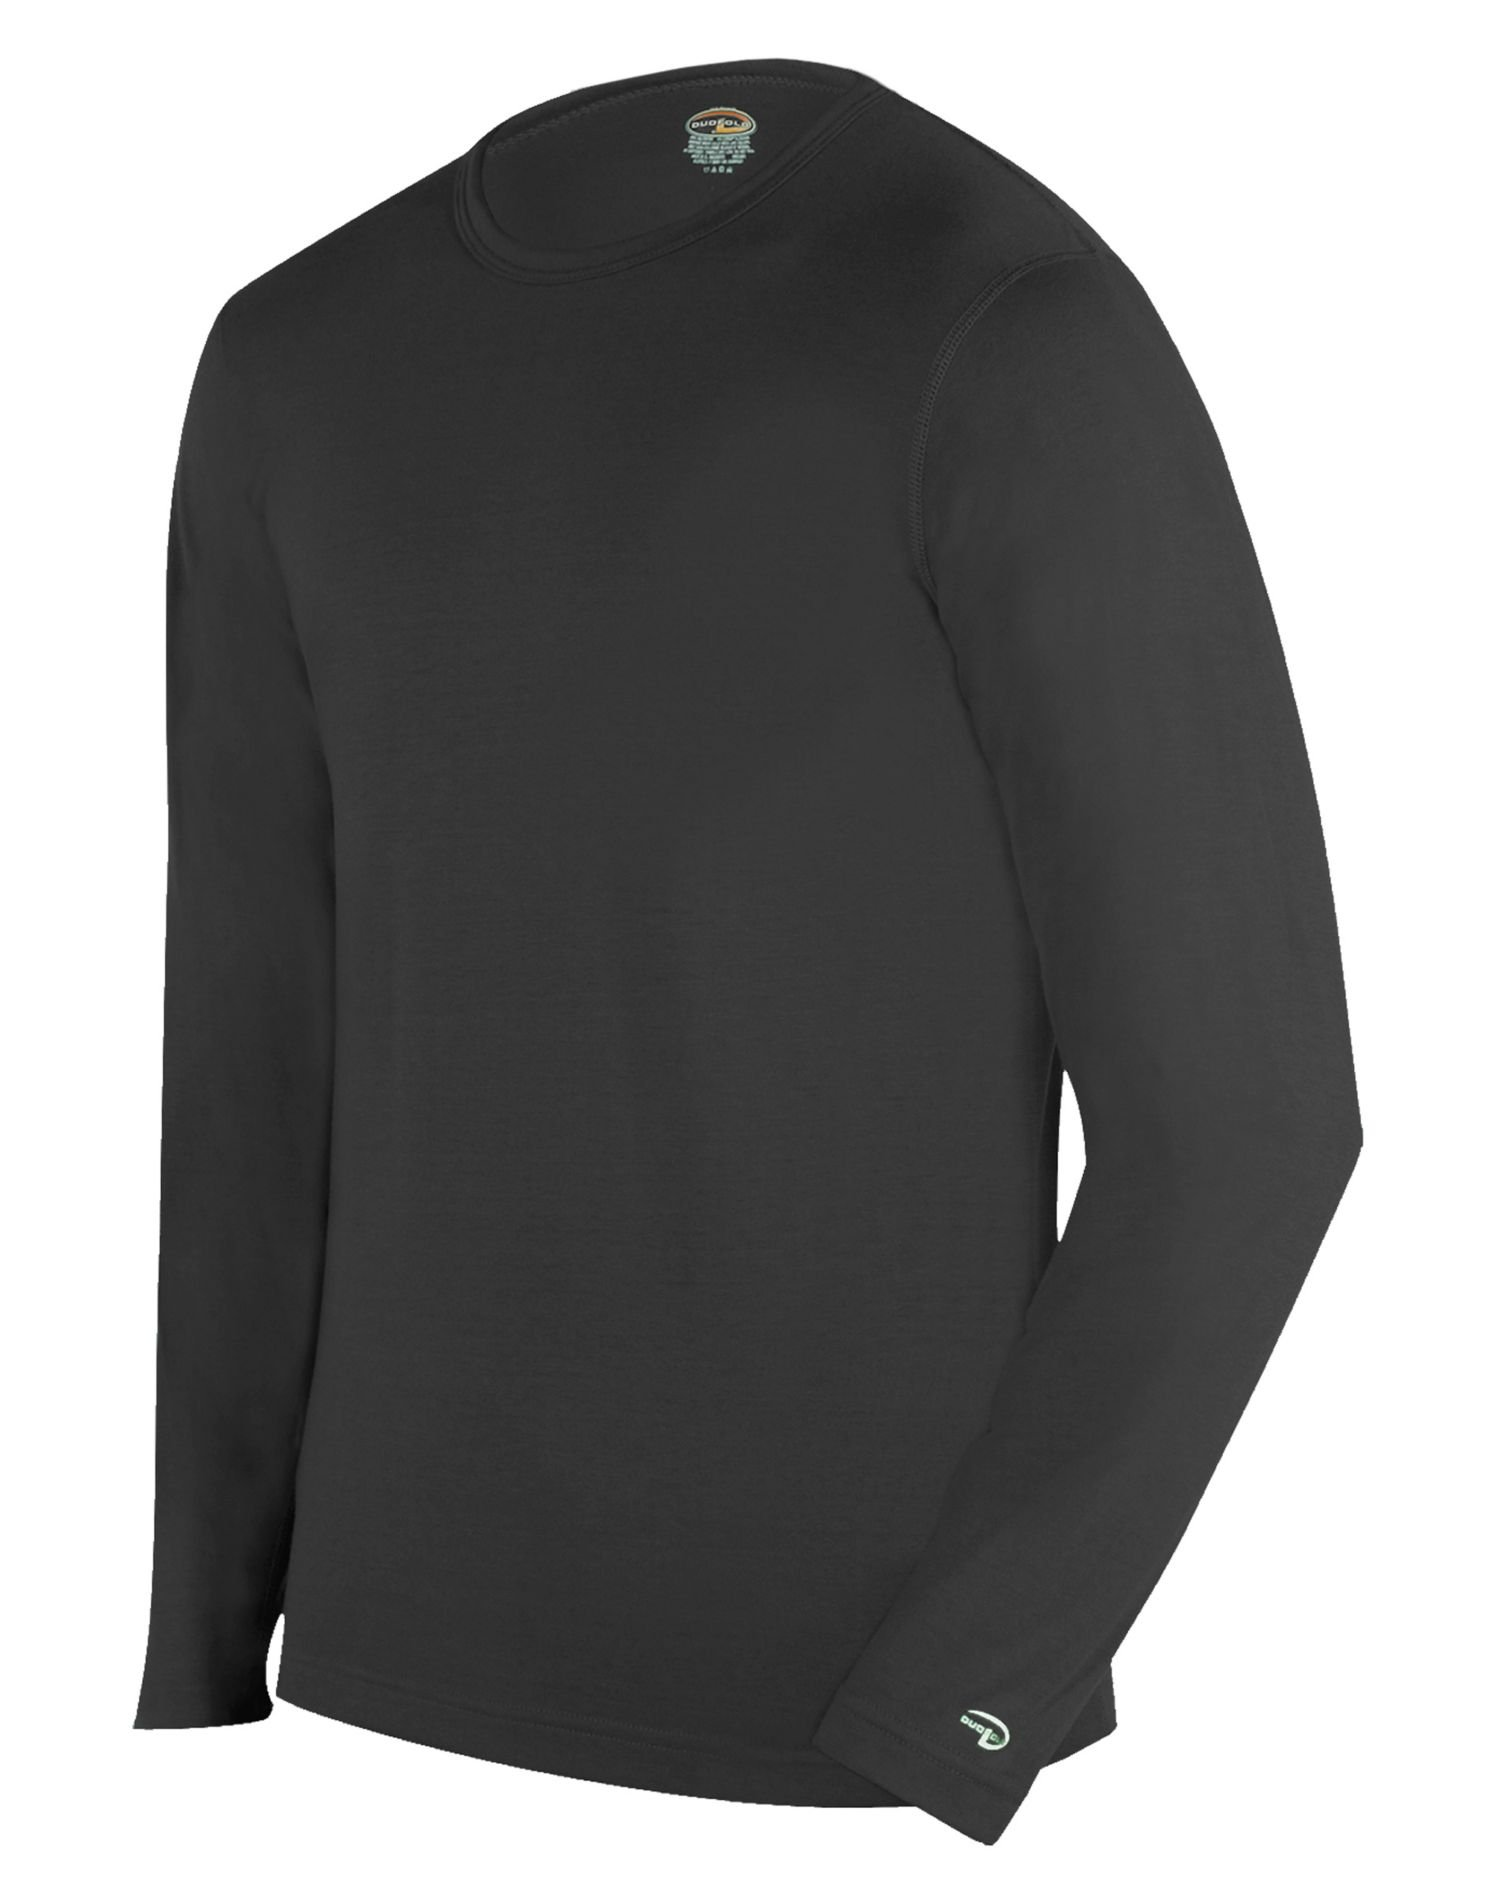 Duofold Men's Expedition Weight Two-Layer Thermal Tagless Crew, Black, Medium